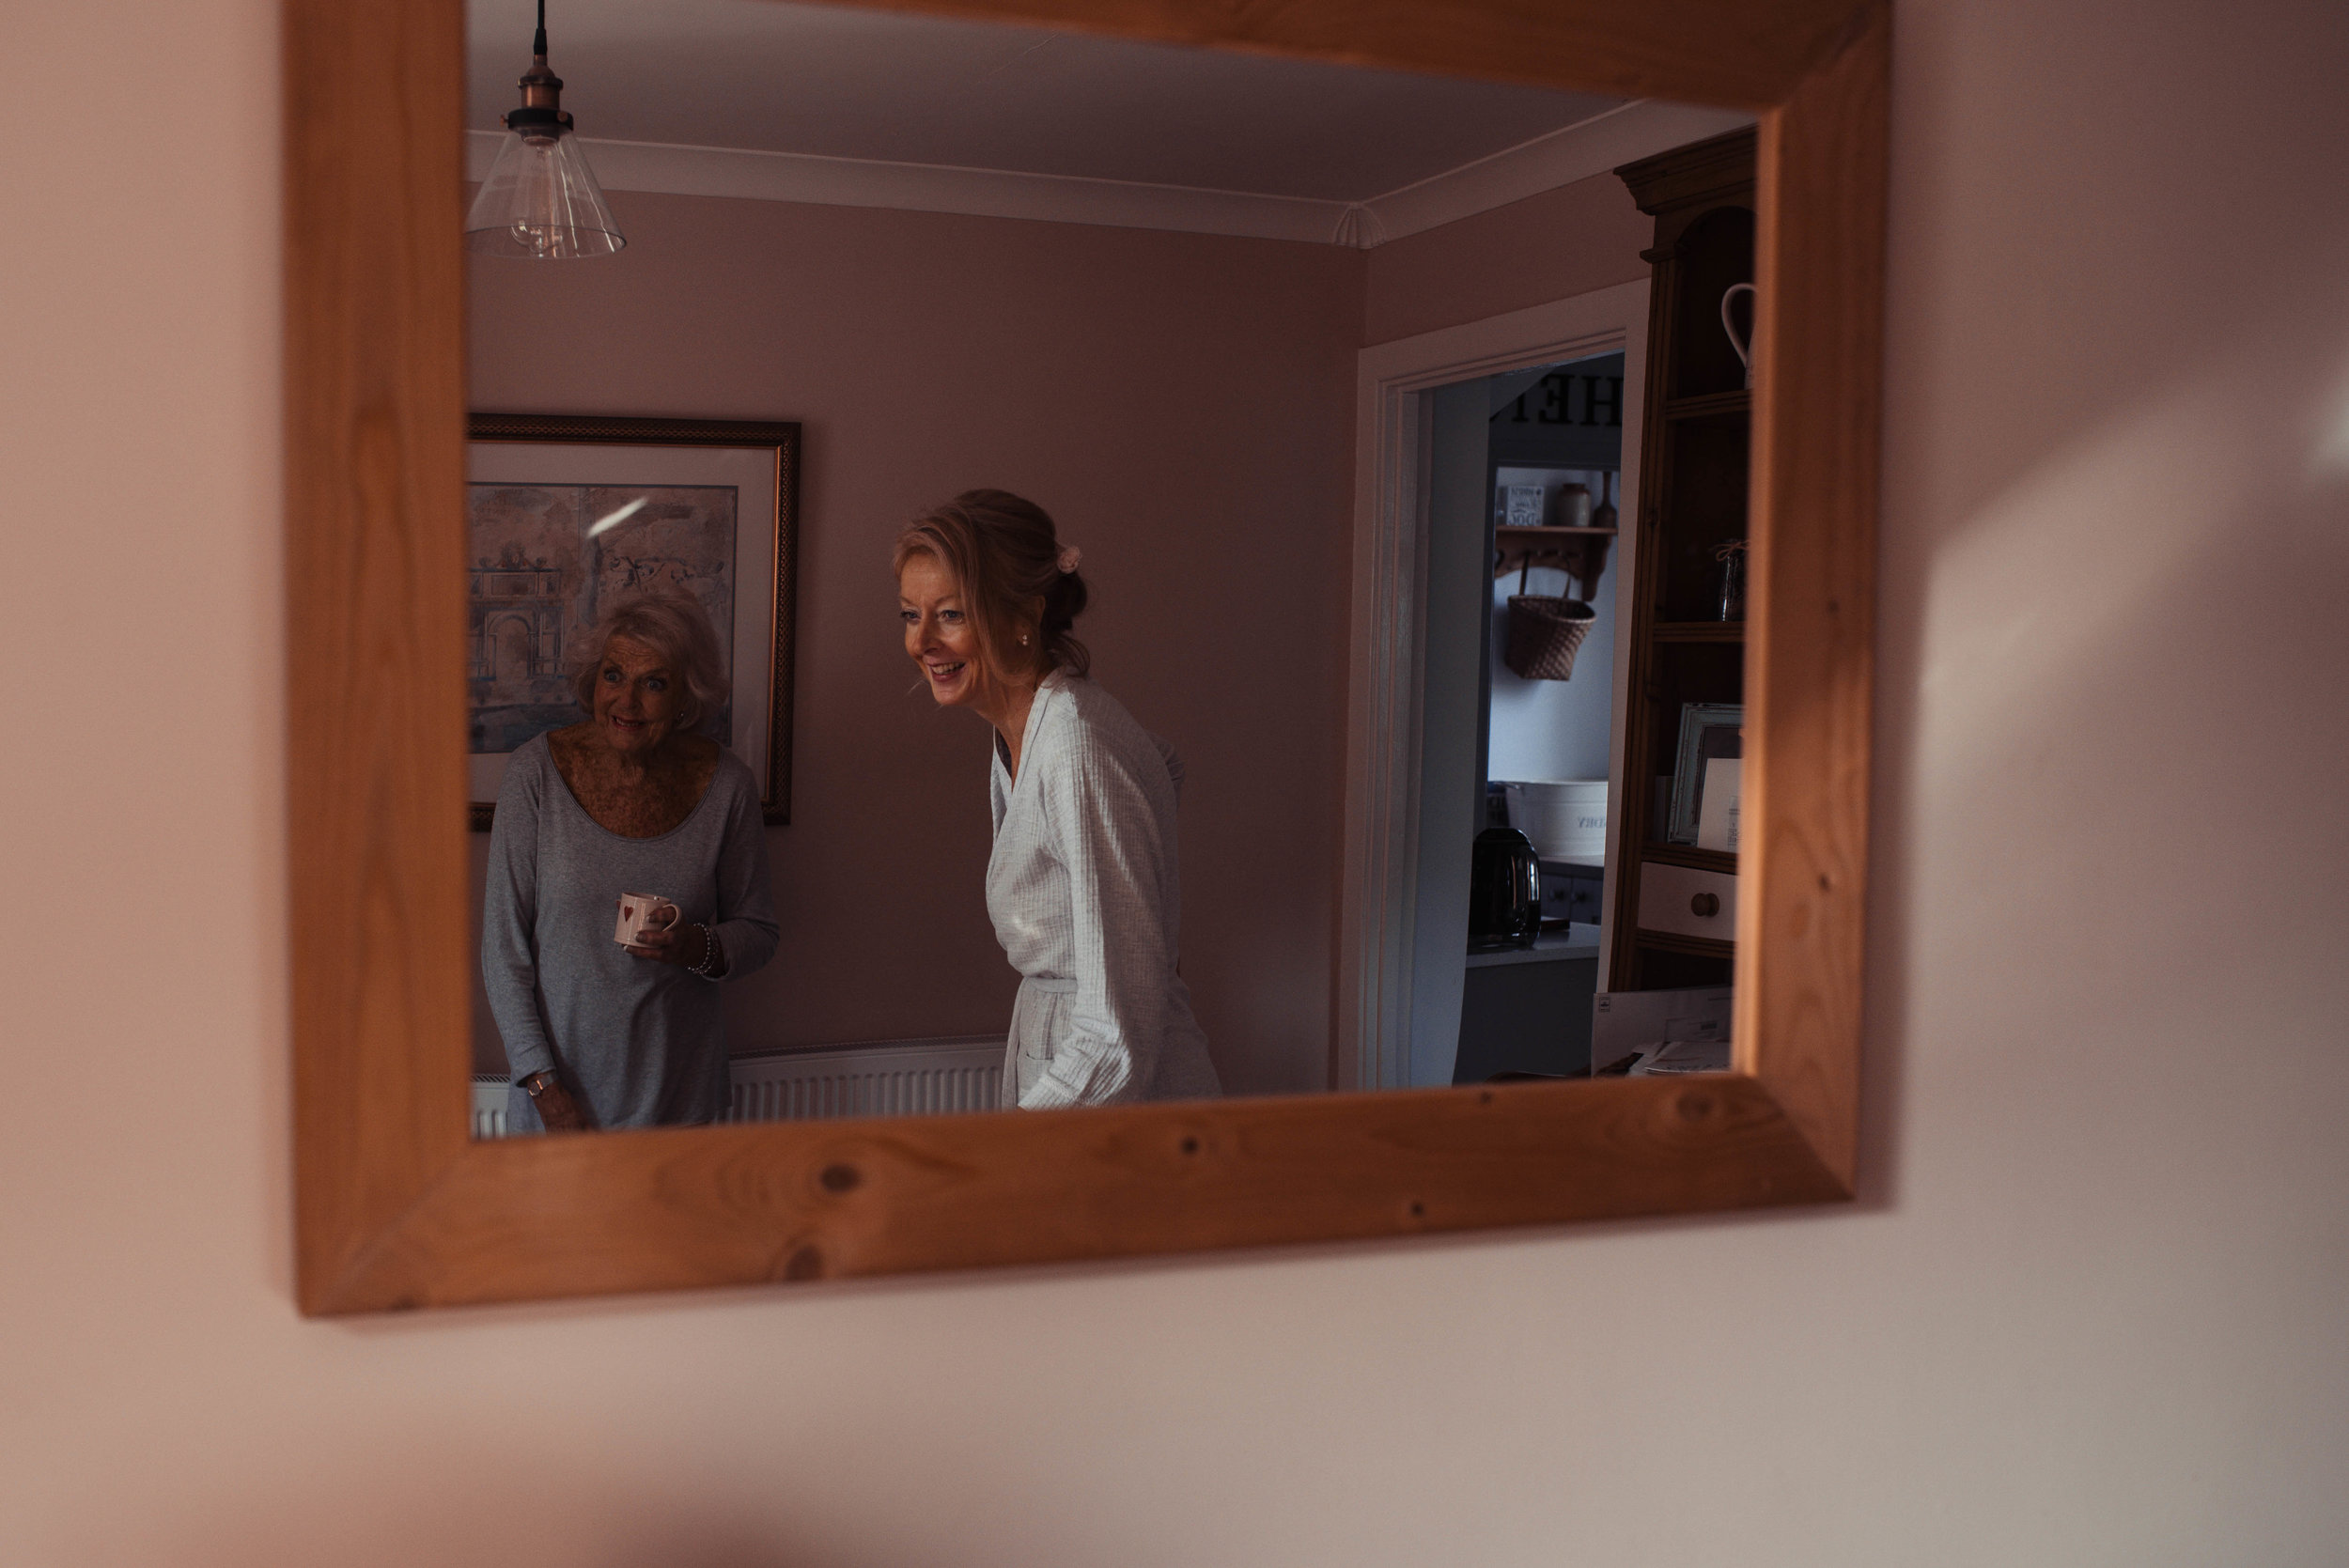 The bride and her mother as seen through a mirror in the kitchen dining room